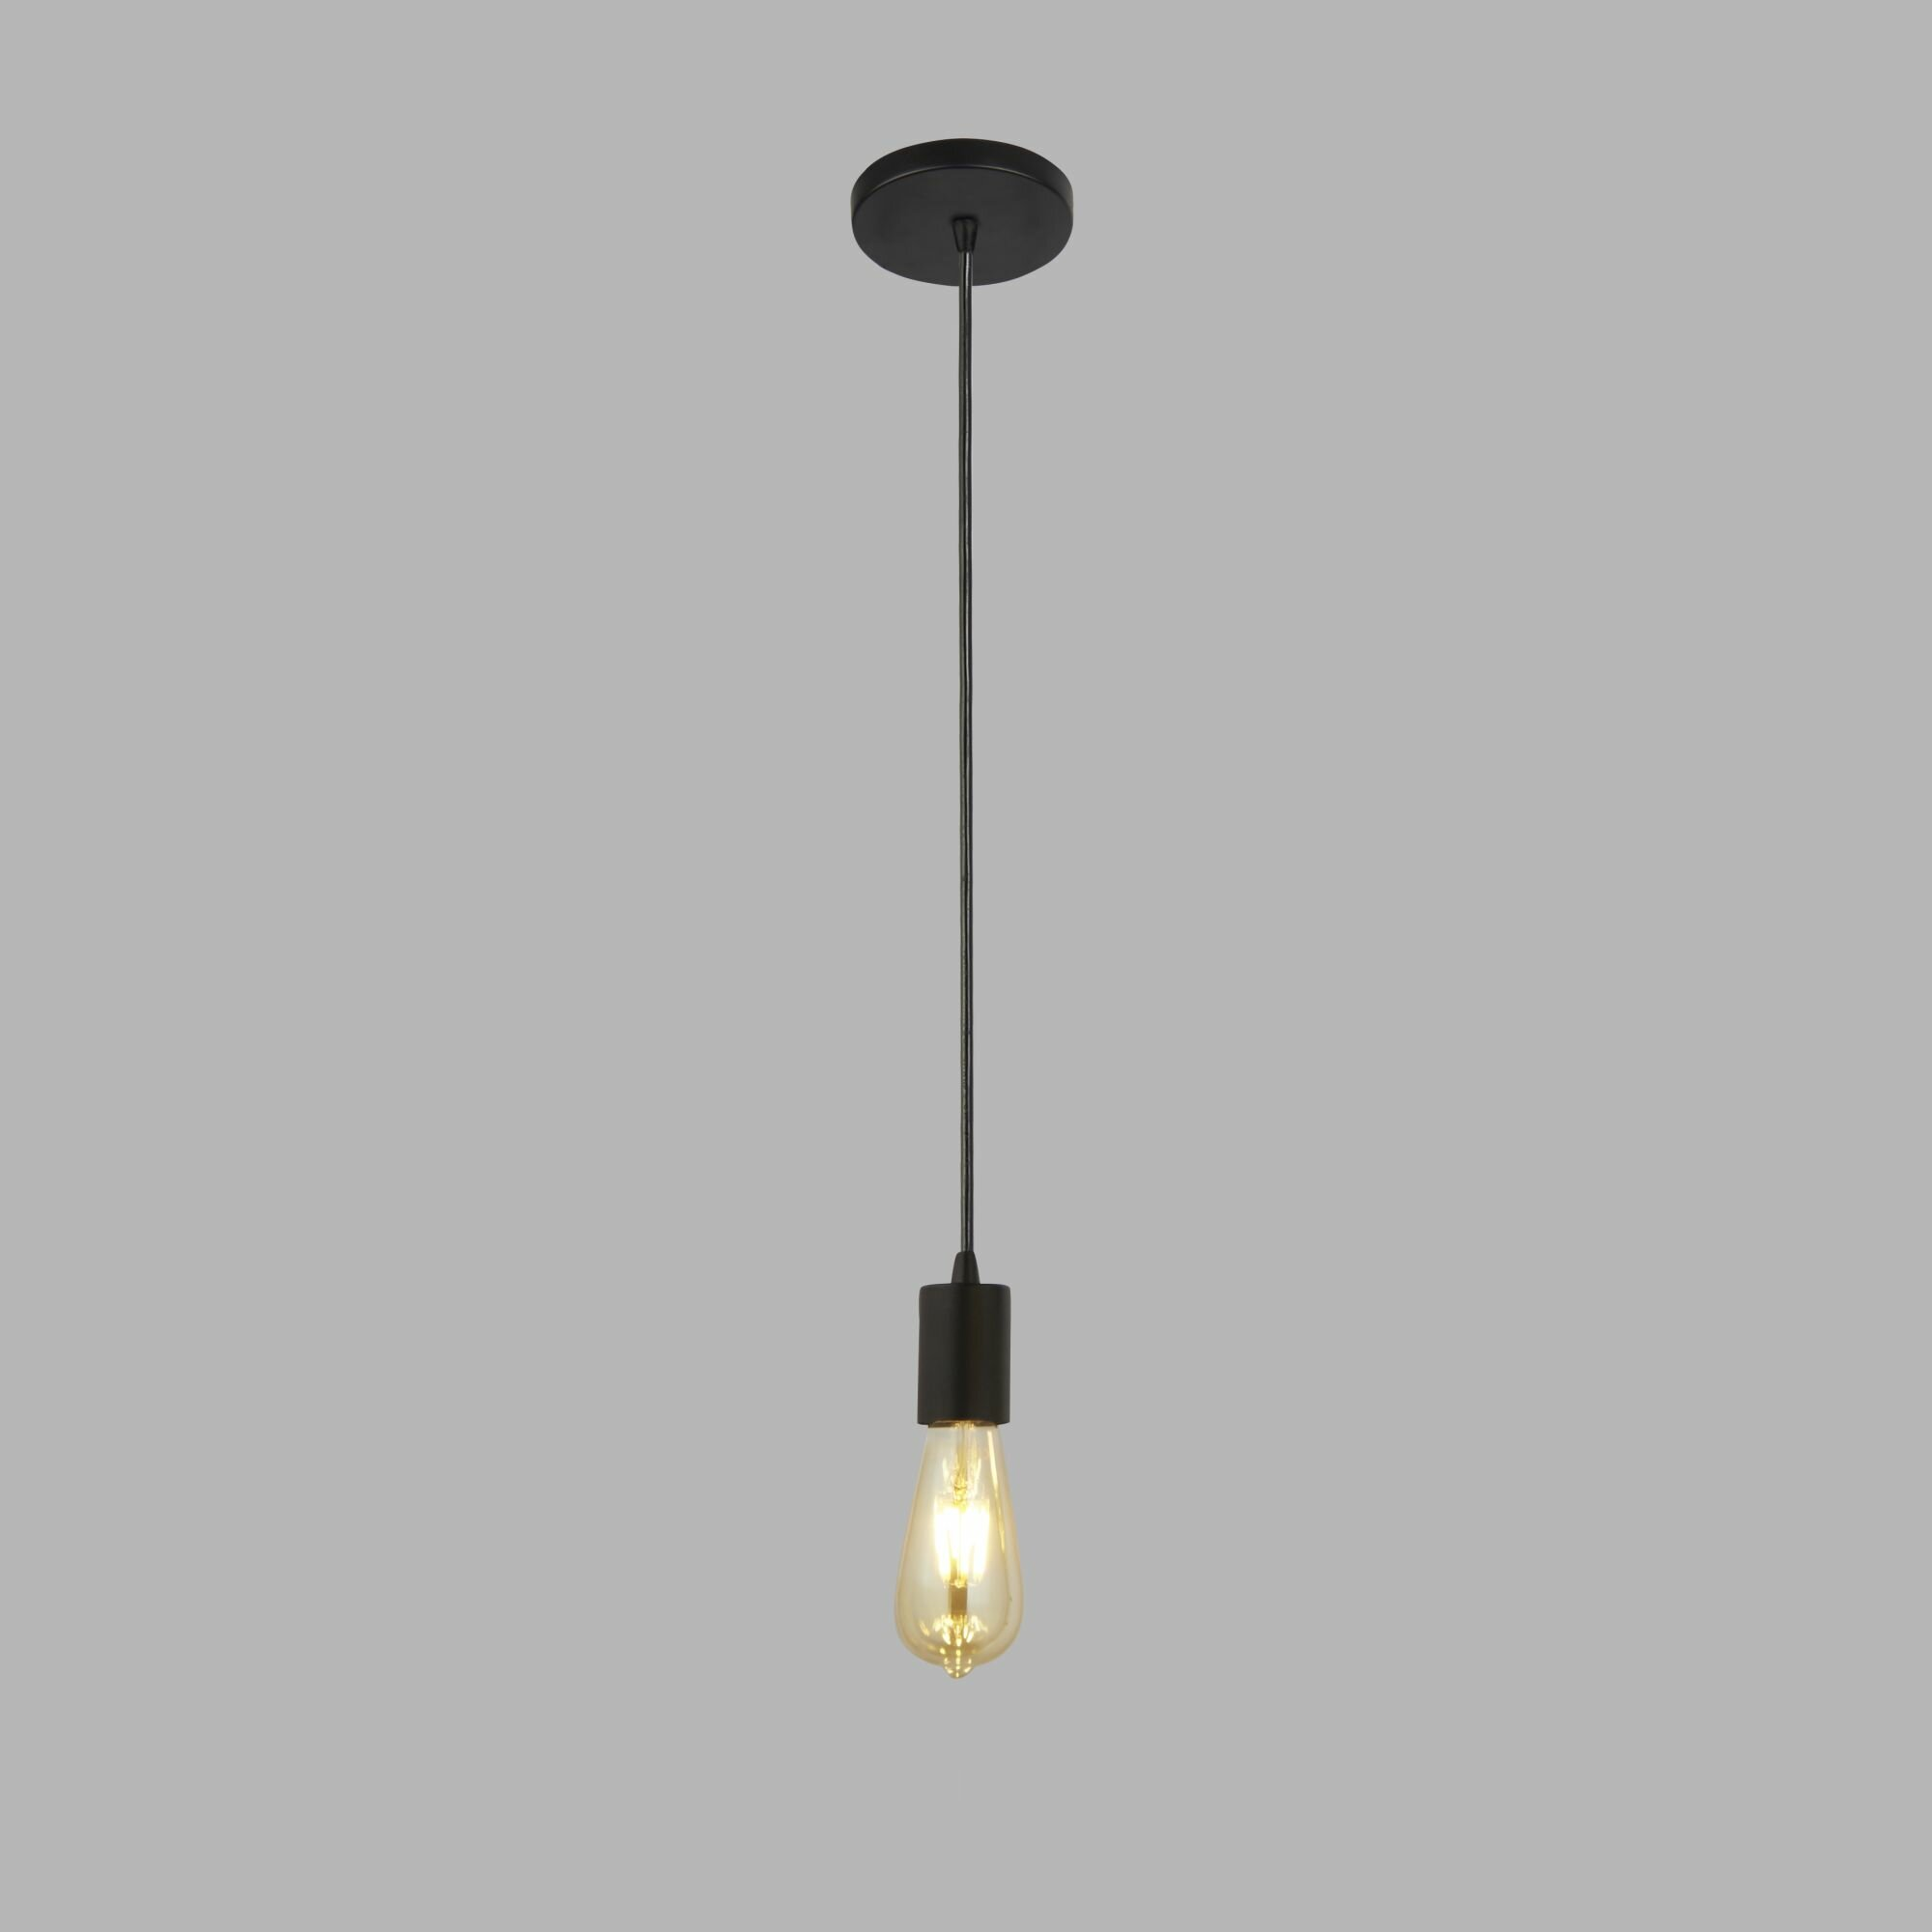 Alondra 1 Light Bulb Pendant